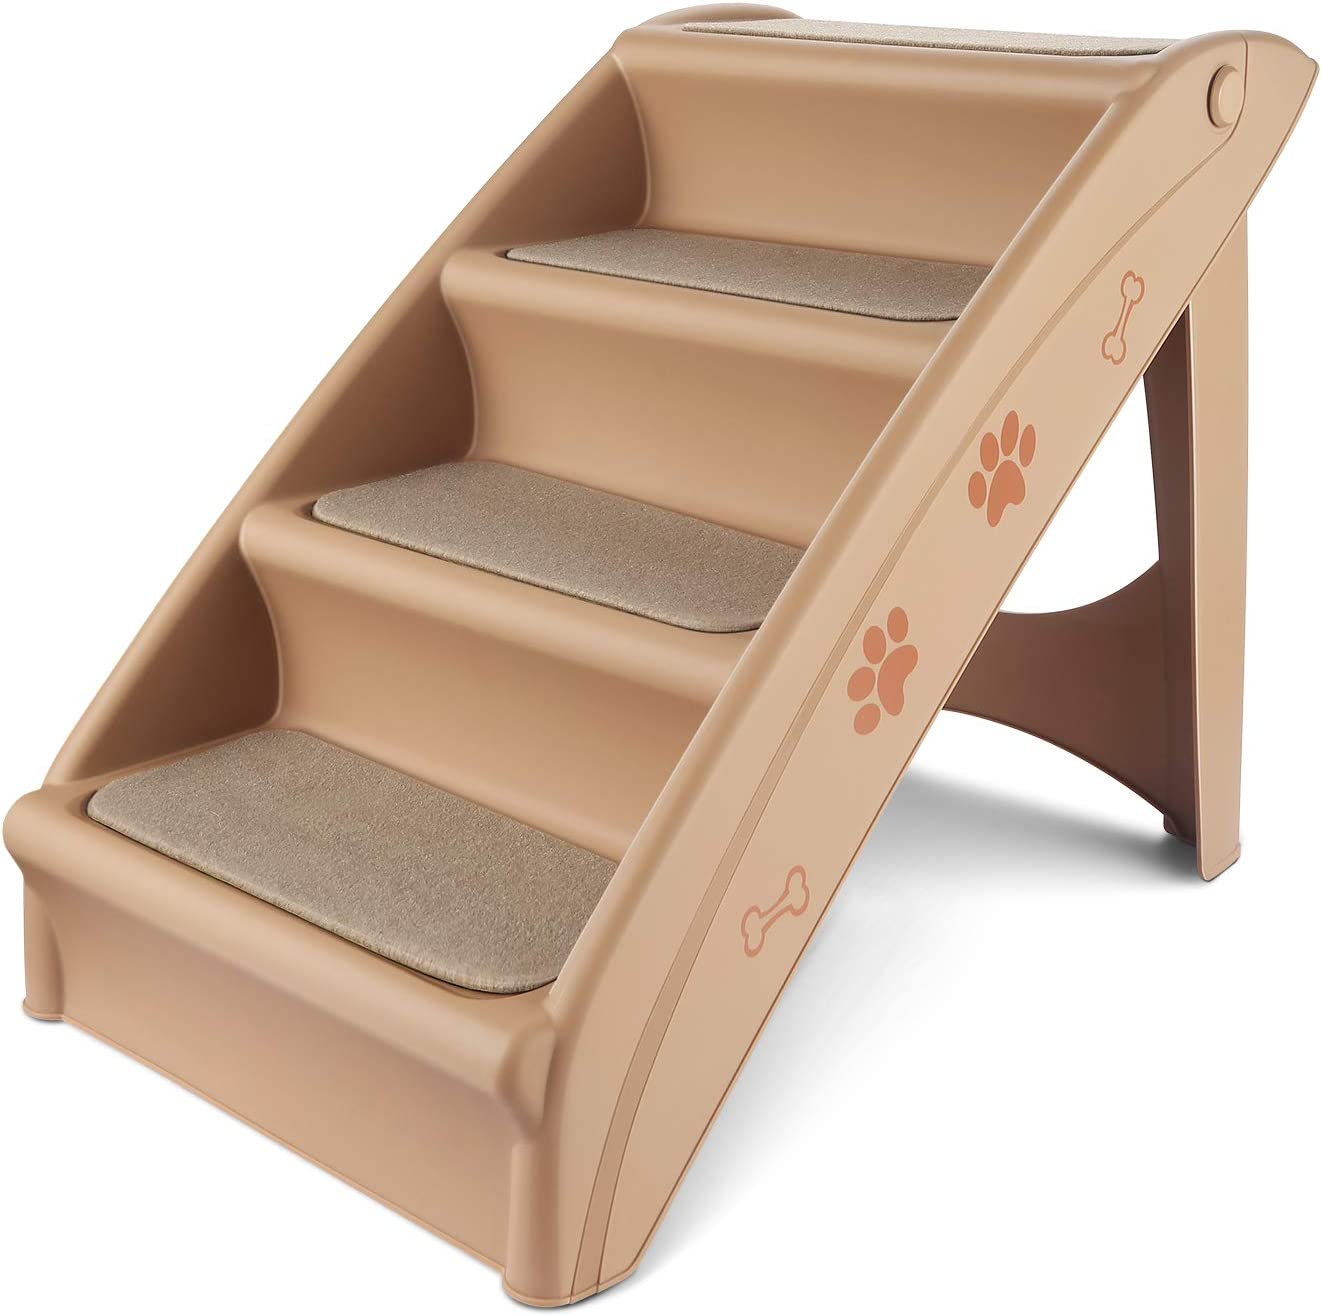 Flexzion Pet Stairs Folding Dog Cat Animal Step Ramp Ladder Foldable Plastic Portable for Tall Bed Indoor Outdoor Decor Supply Easy Store in Beige : Pet Supplies